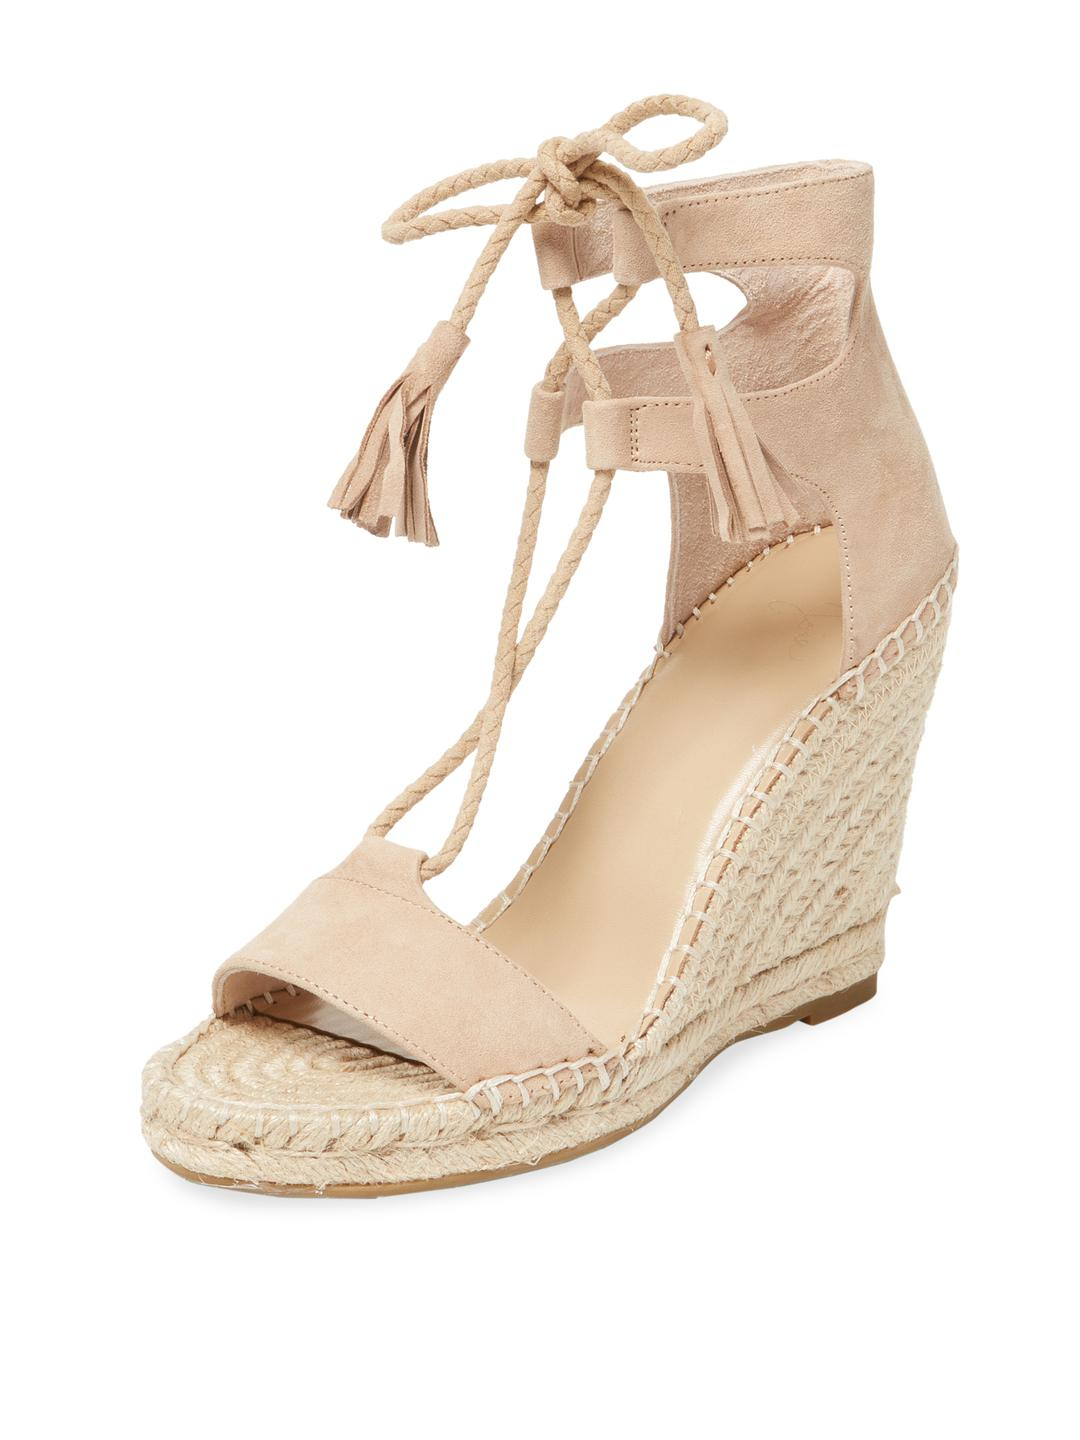 34c9a198937 Joie - Natural Delilah Leather Wedge Sandal - Lyst